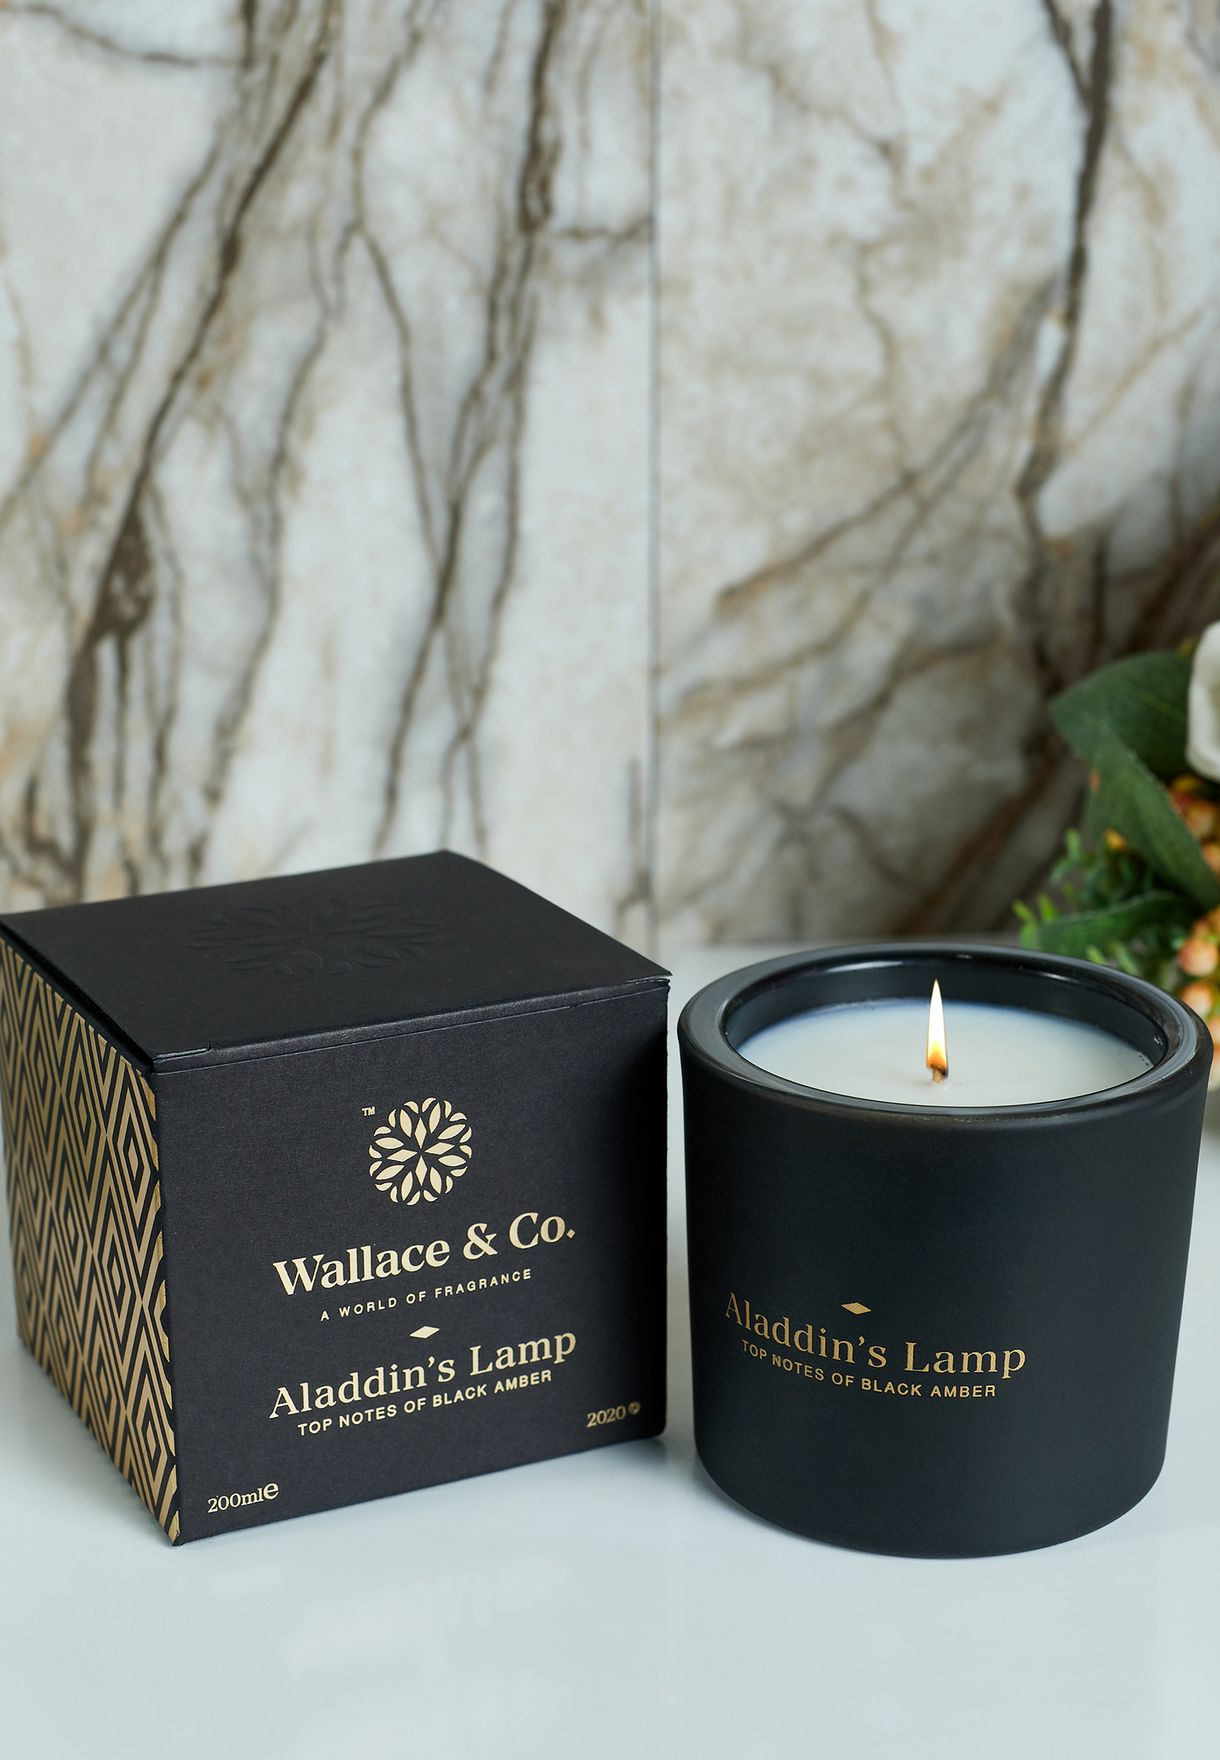 Black Amber Aladdin's Lamp Scented Candle 200ml